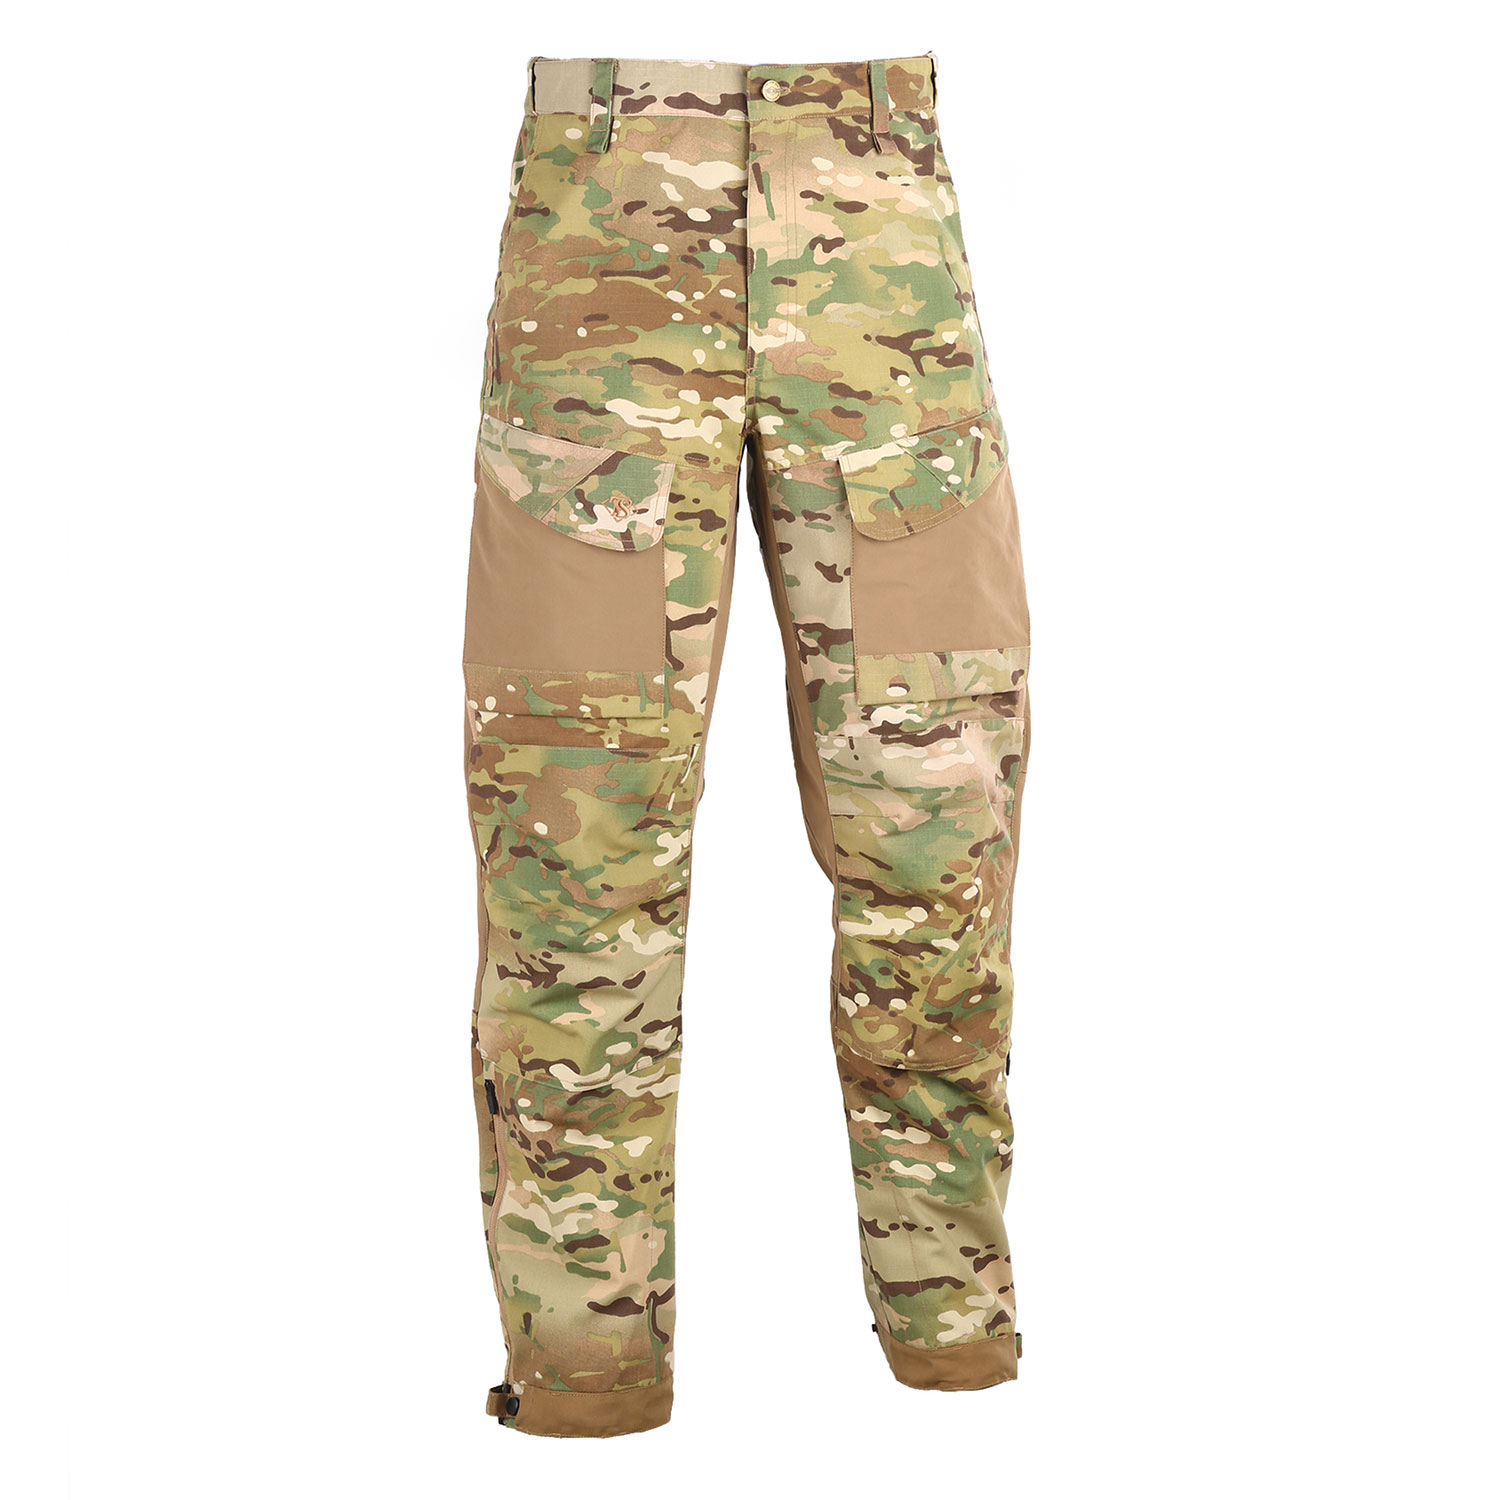 TRU-SPEC 24-7 Xpedition Pants